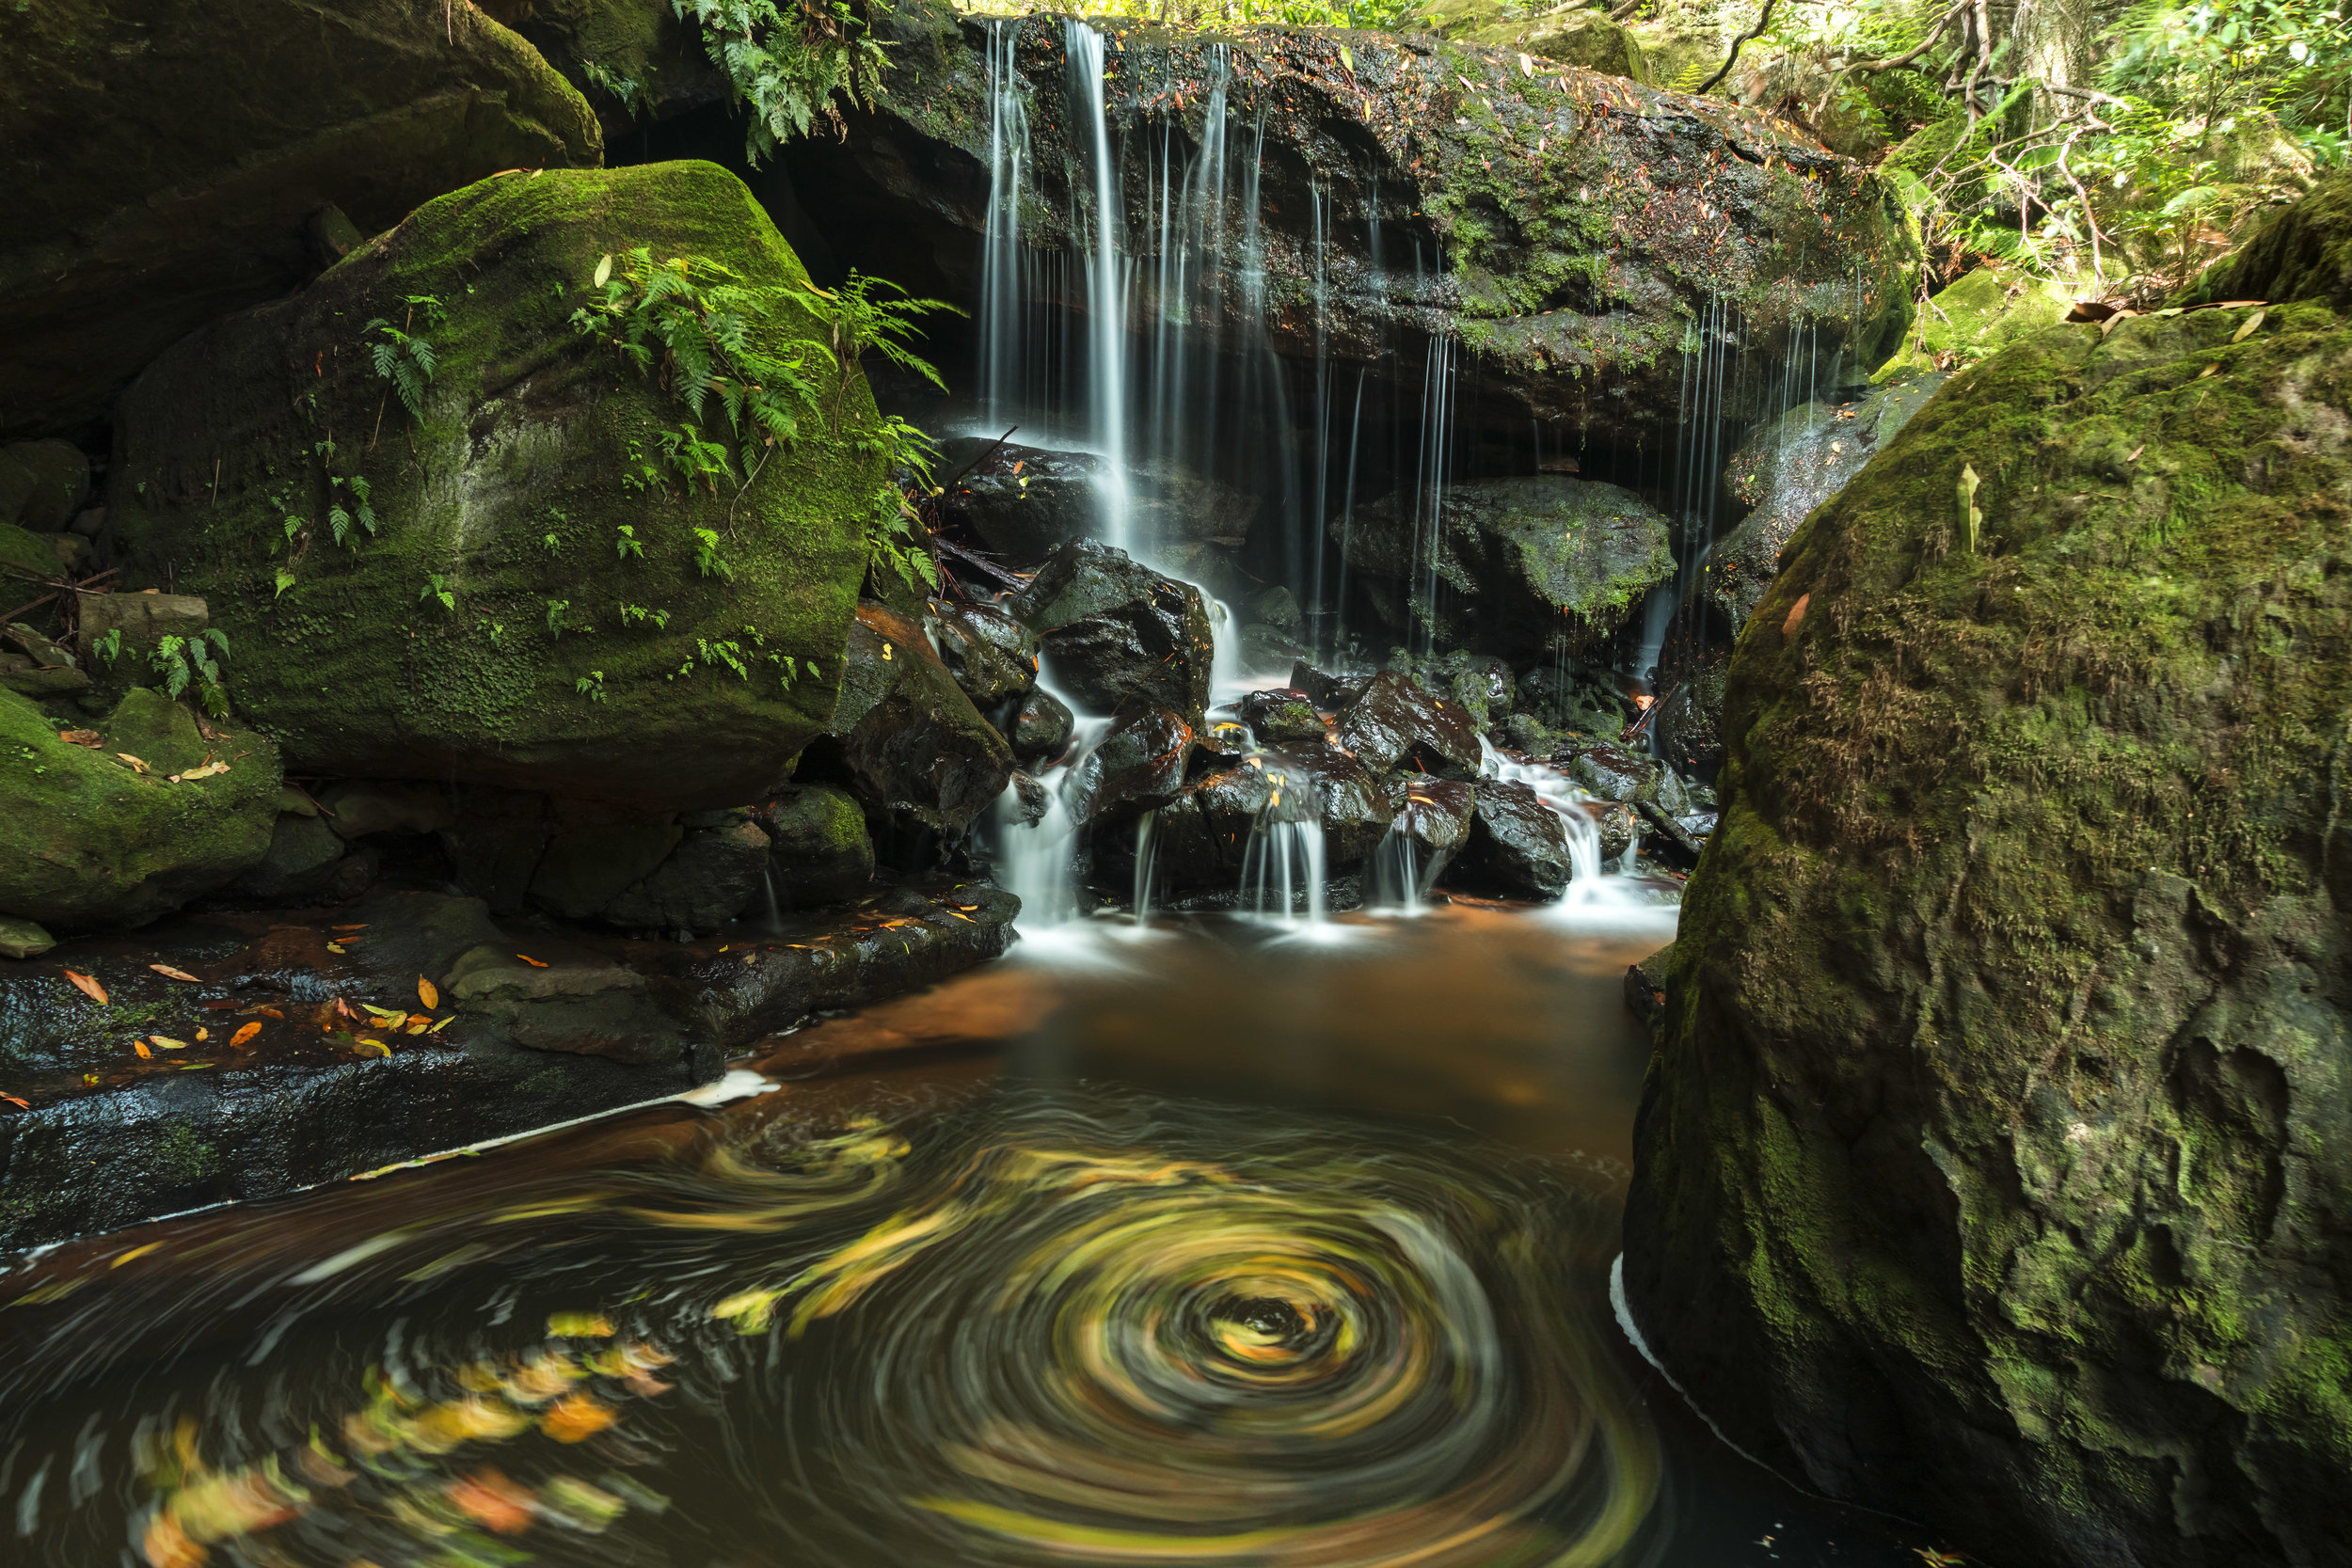 Waterfalls are amazing for this effect - but they're not the only thing you can shoot with slow shutter speeds!